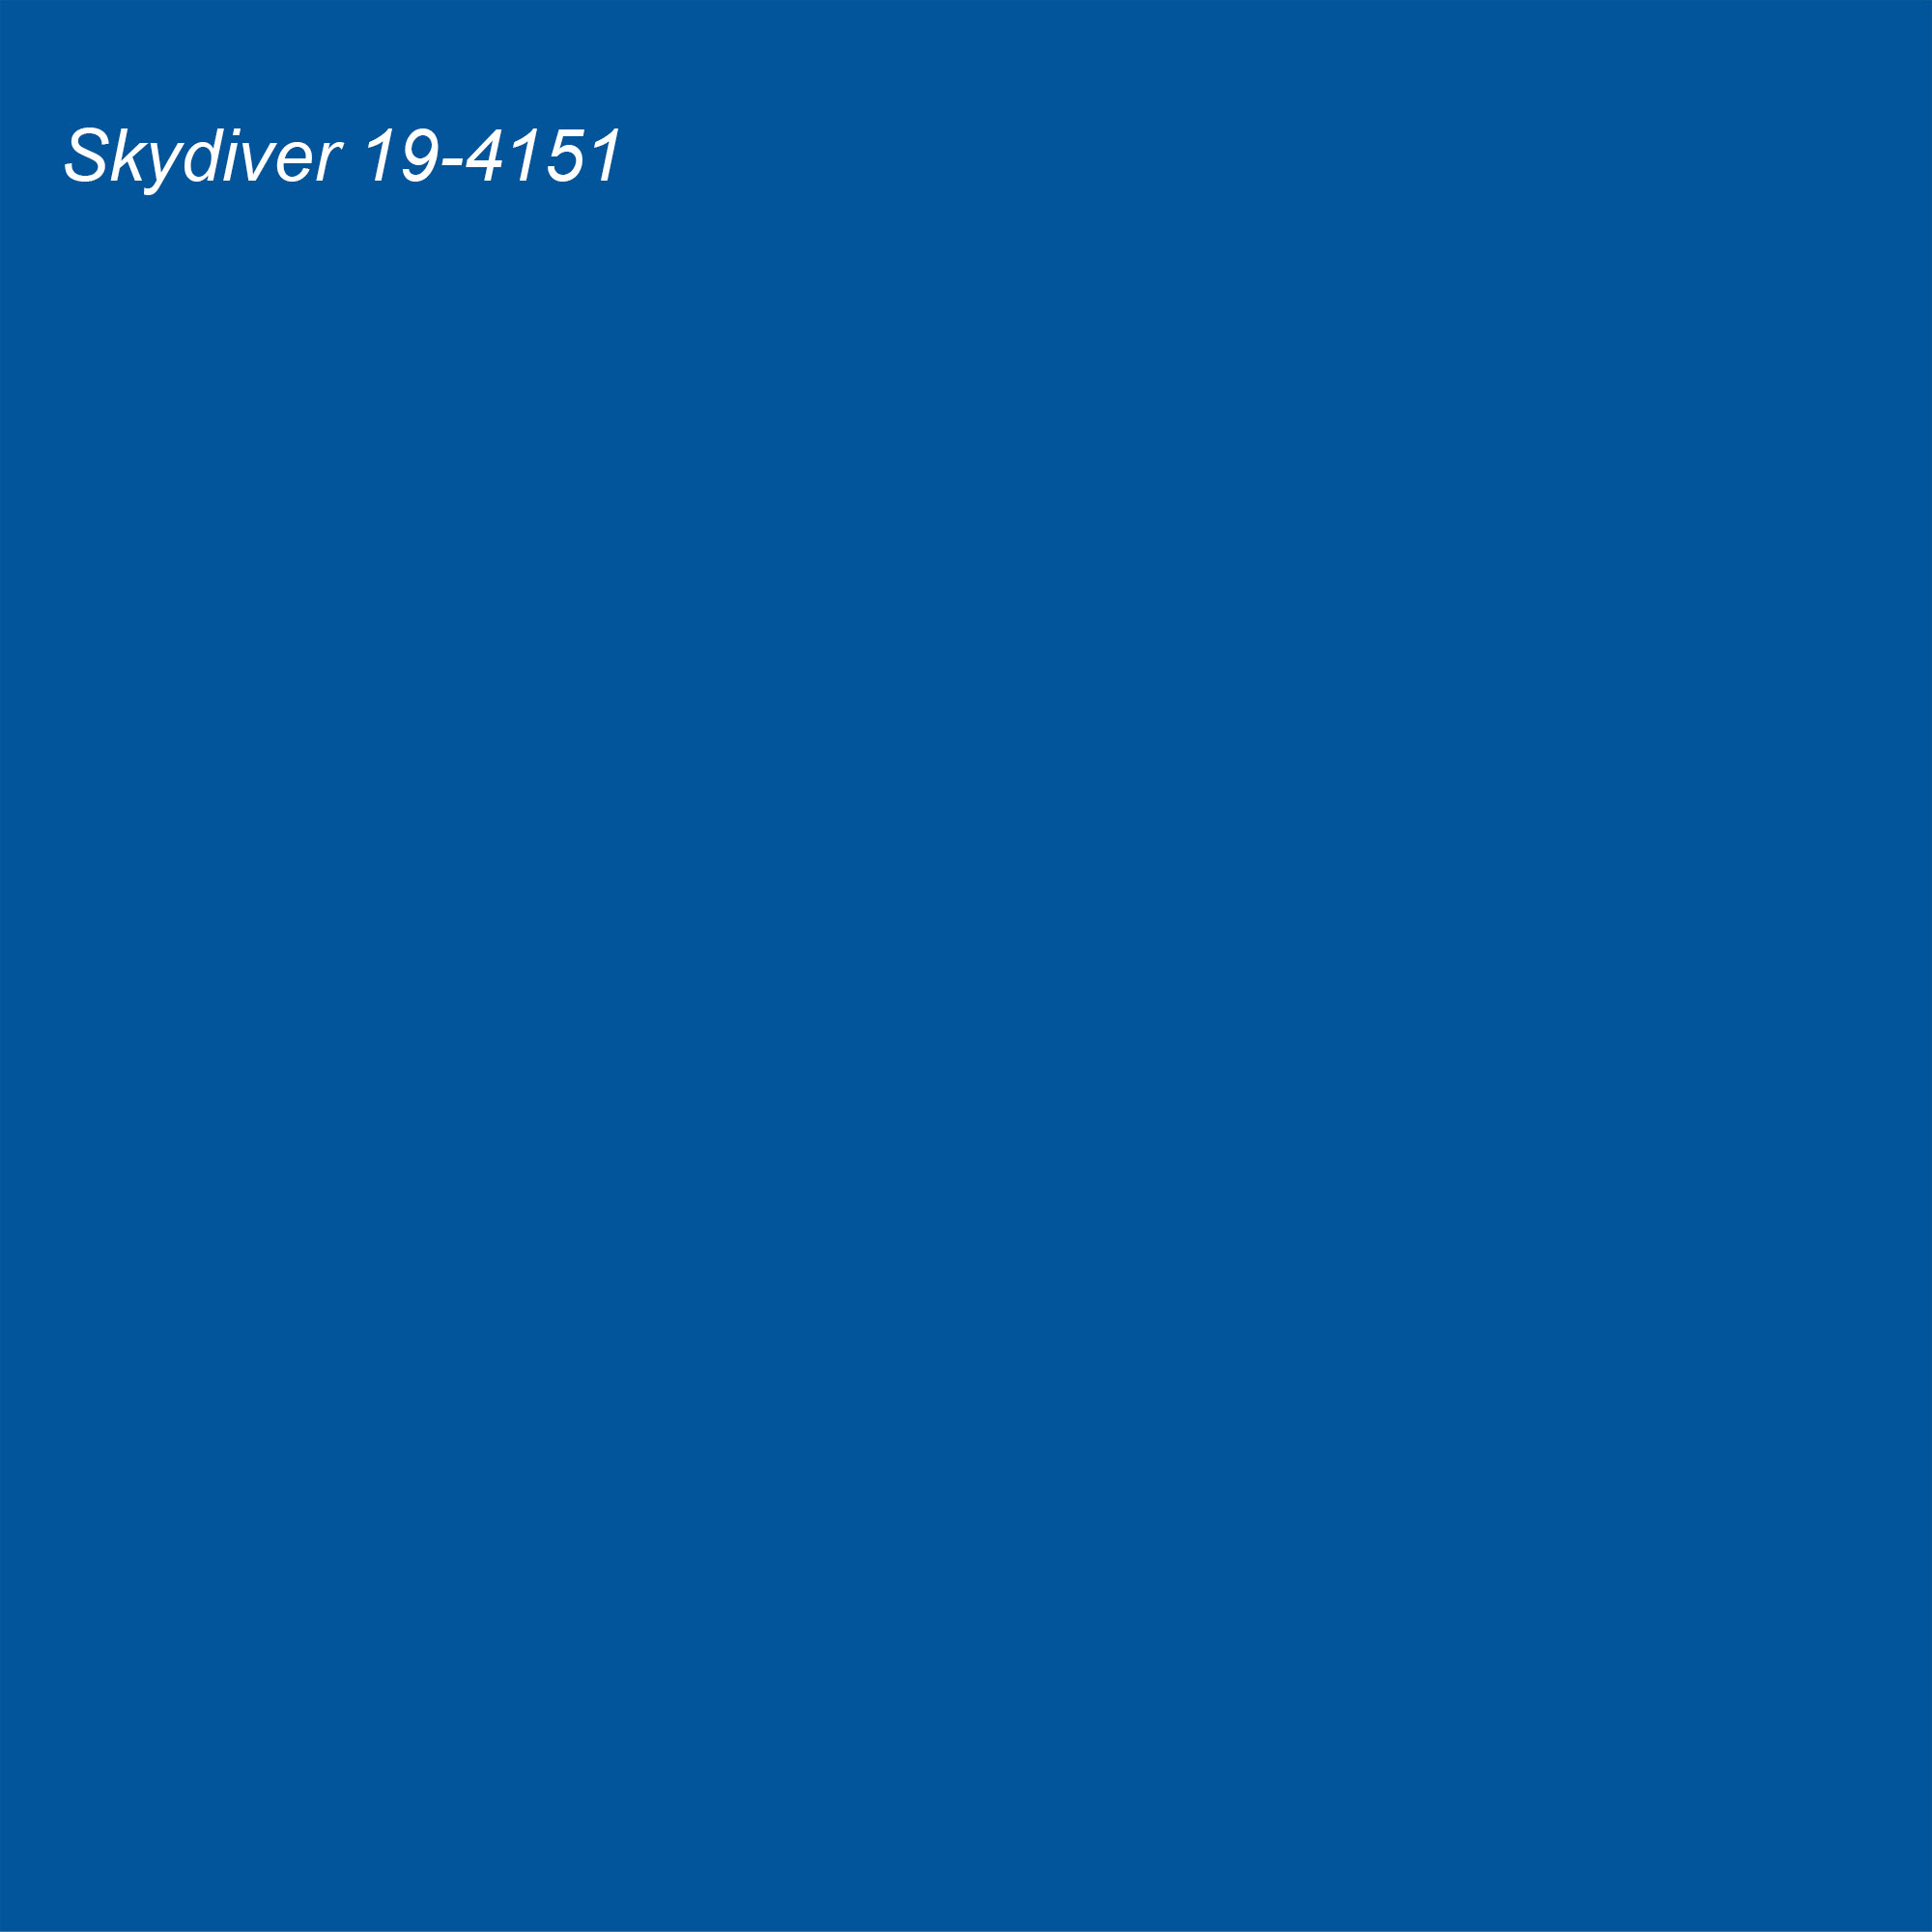 Pantone 2021 Color of the Year Suggested Accent Shade Skydiver 19-4151